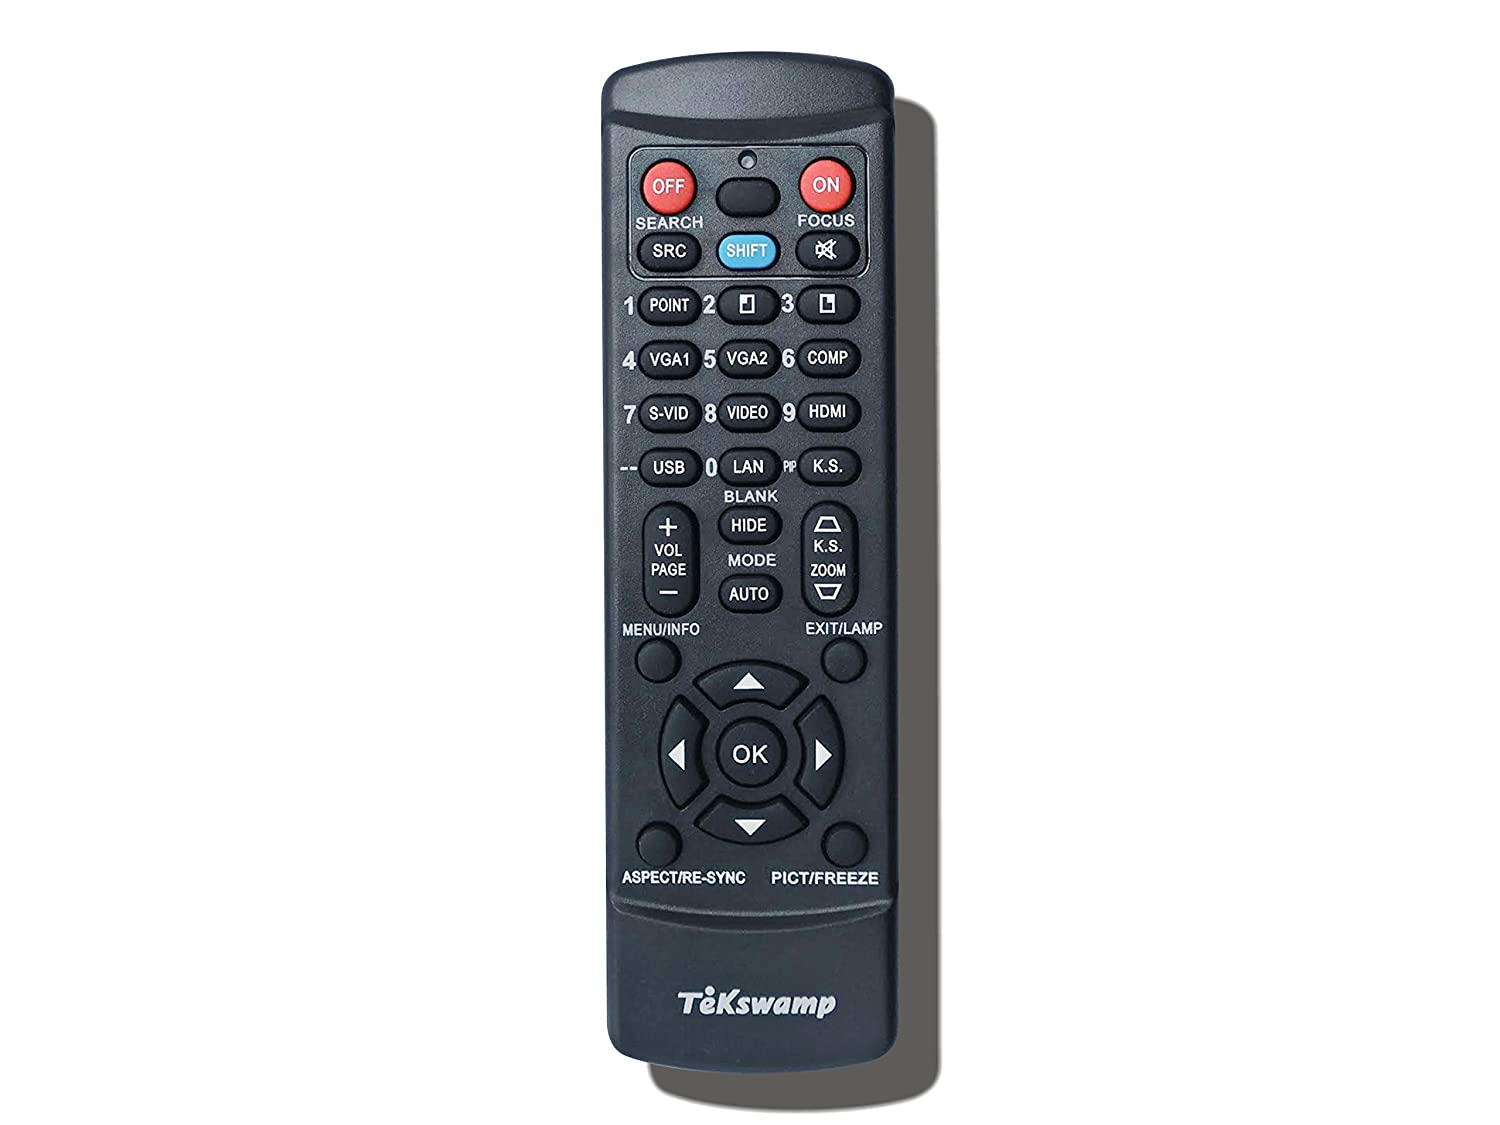 for Sharp XG-C330X TeKswamp Video Projector Remote Control White